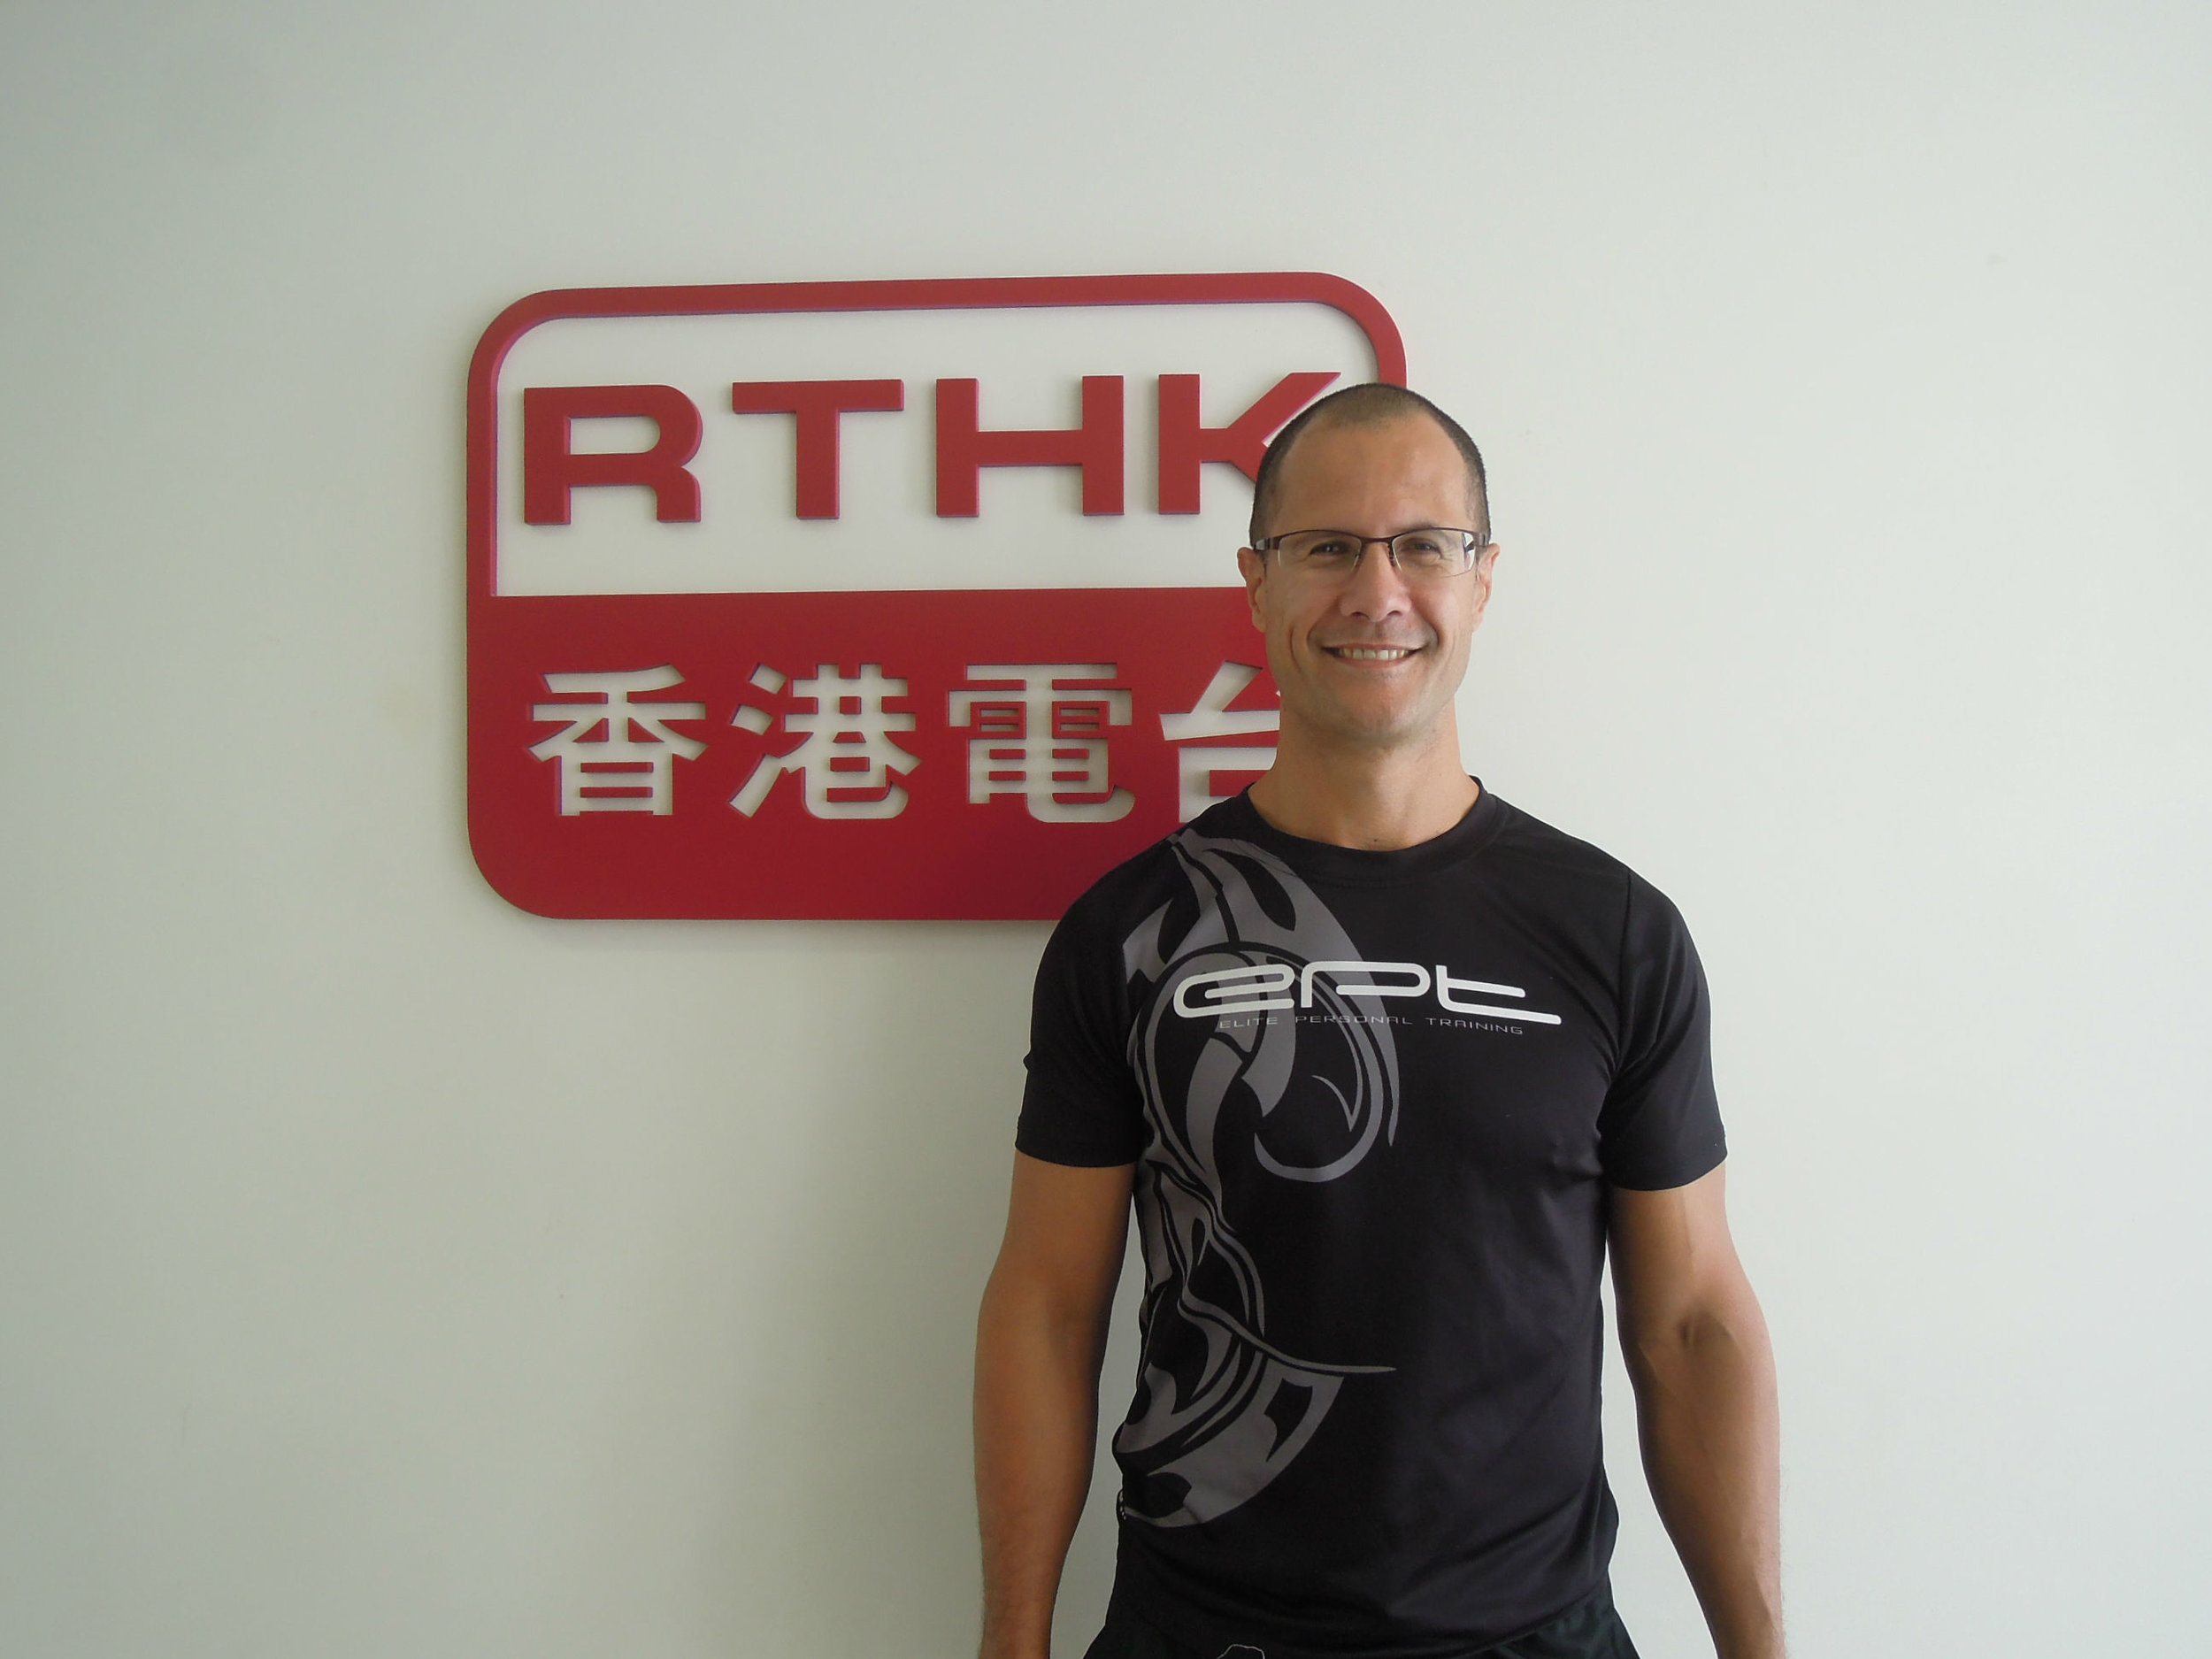 Listen to Nate on the RTHK 1-2-3 Show with Noreen Mir every Monday at 2pm for all the latest on Health & Fitness newsRTHK.    https://www.rthk.hk/radio/radio3/programme/1_2_3_show/episode/559295    https://www.rthk.hk/radio/radio3/programme/1_2_3_show/episode/550242